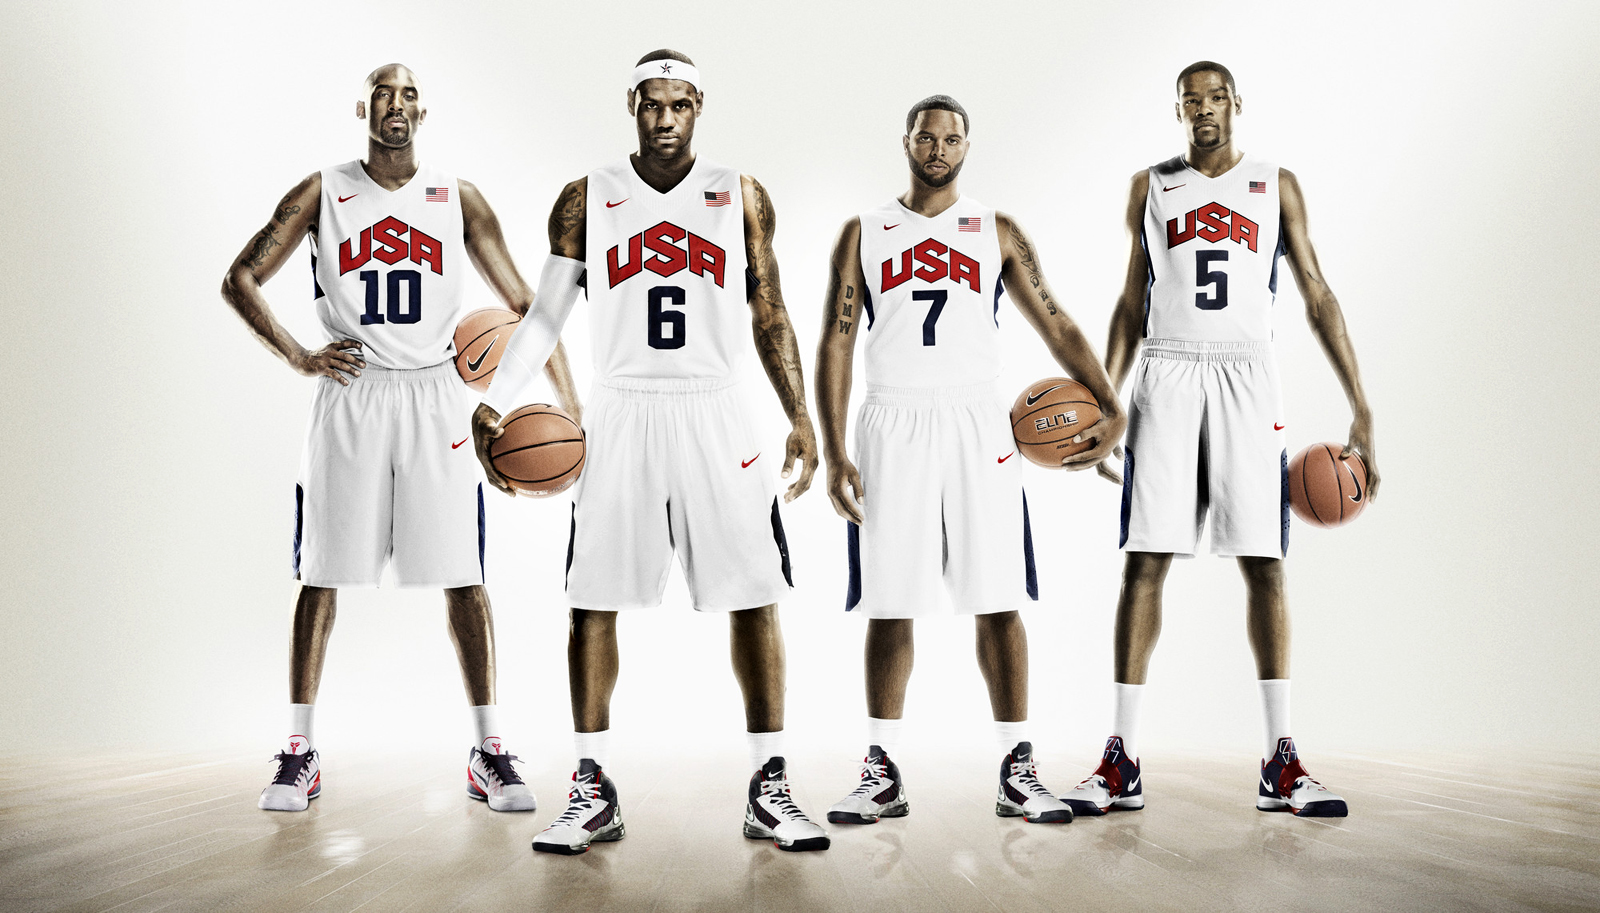 Basketball Team Usa Players London 2012 Olympics Nike HD Wallpaper